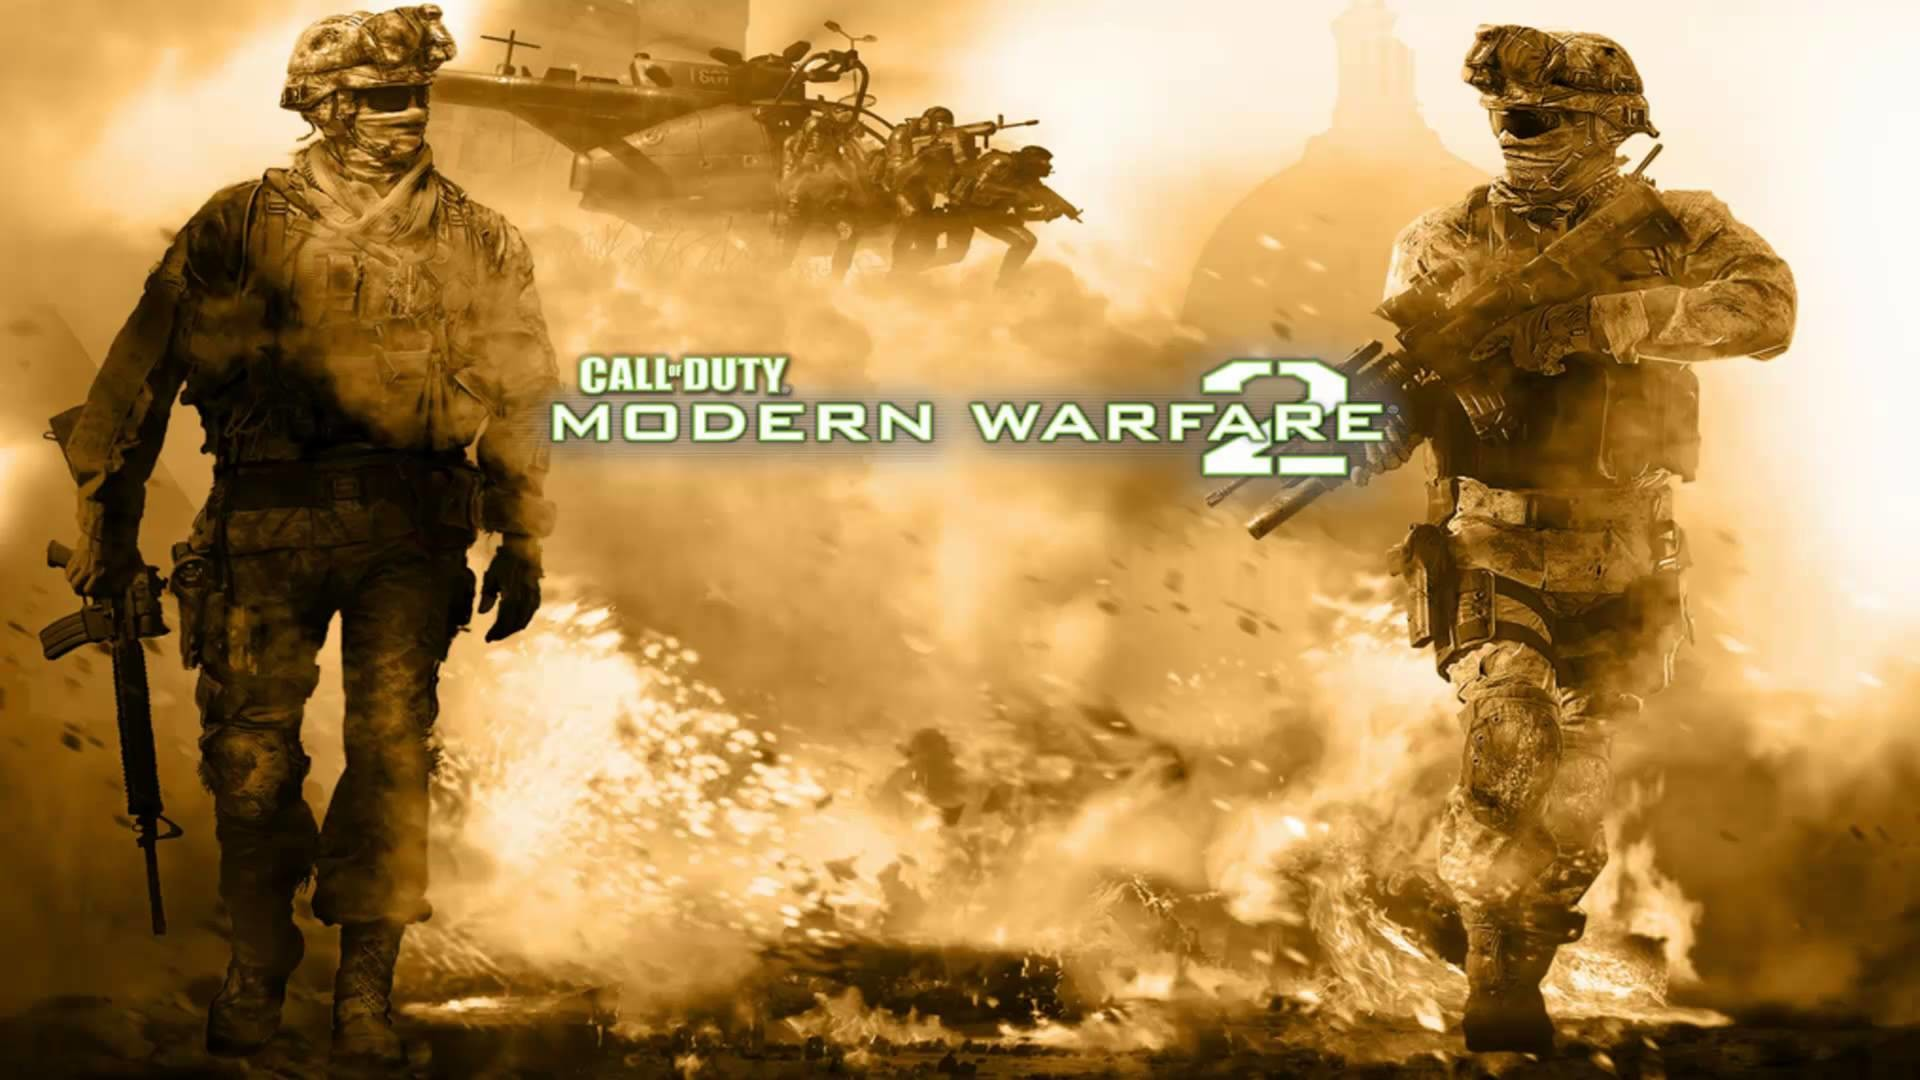 Call Of Duty Modern Warfare 2 Wallpapers Wallpapertag